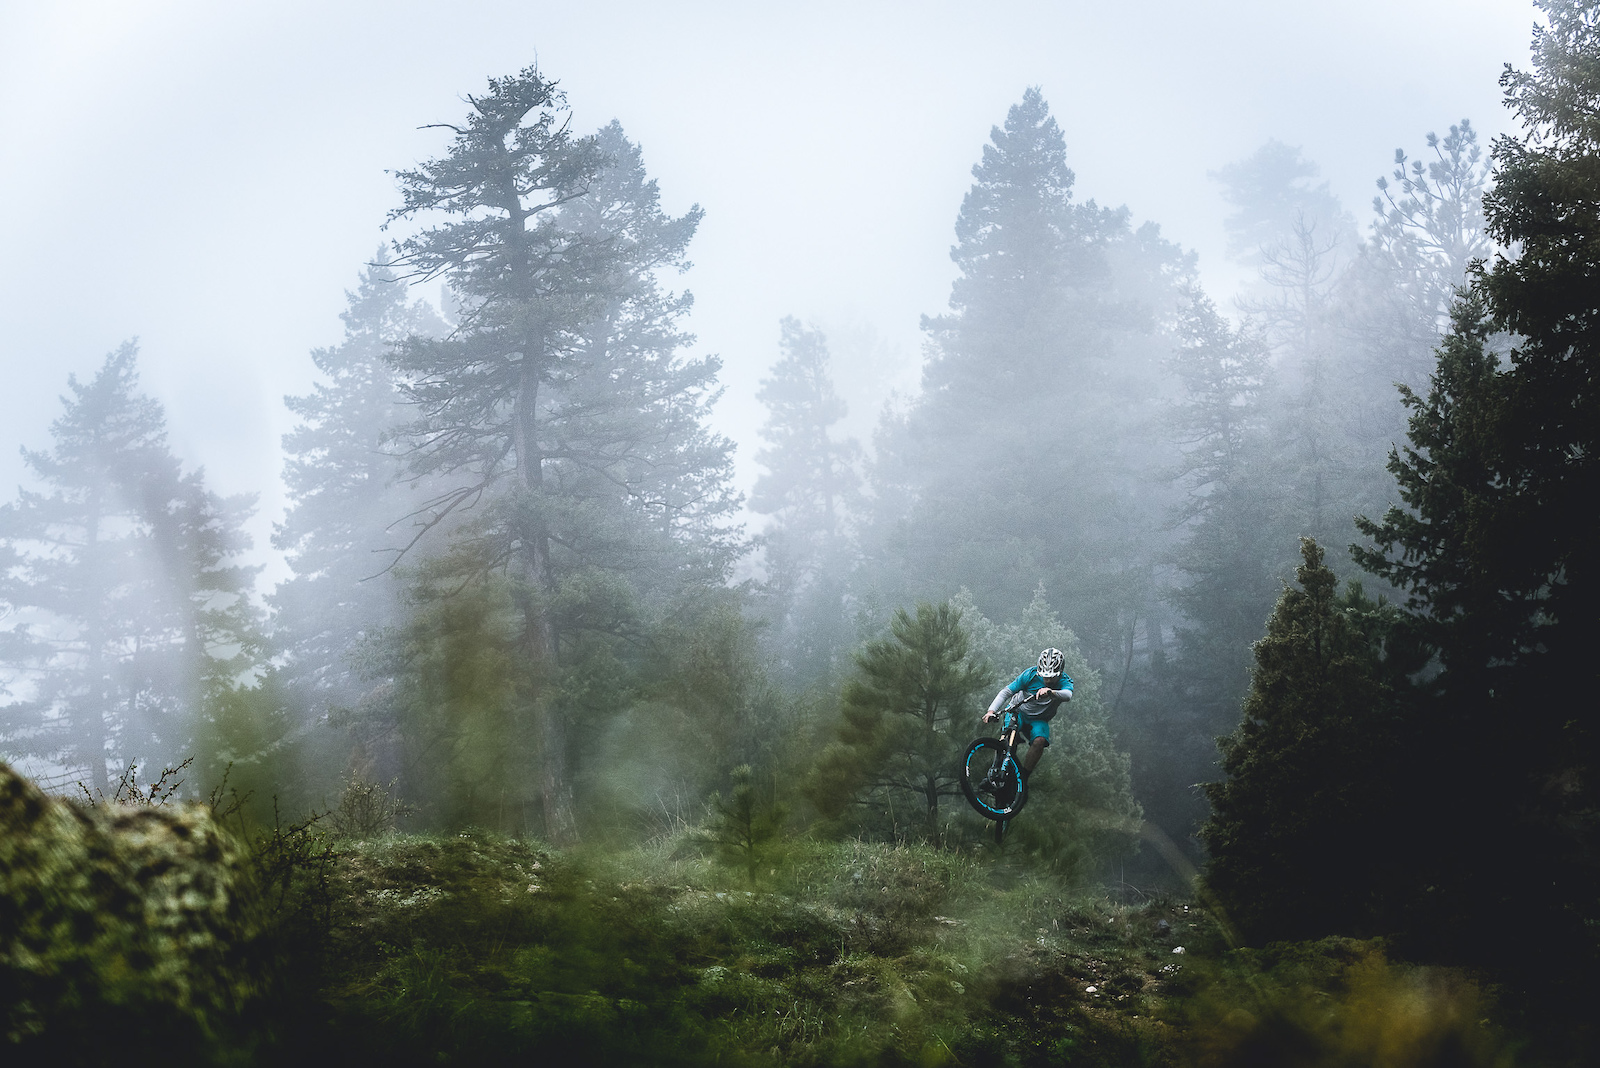 Shawn Neer shreds a rare foggy day at Buffalo Creek on Colorado s Front Range